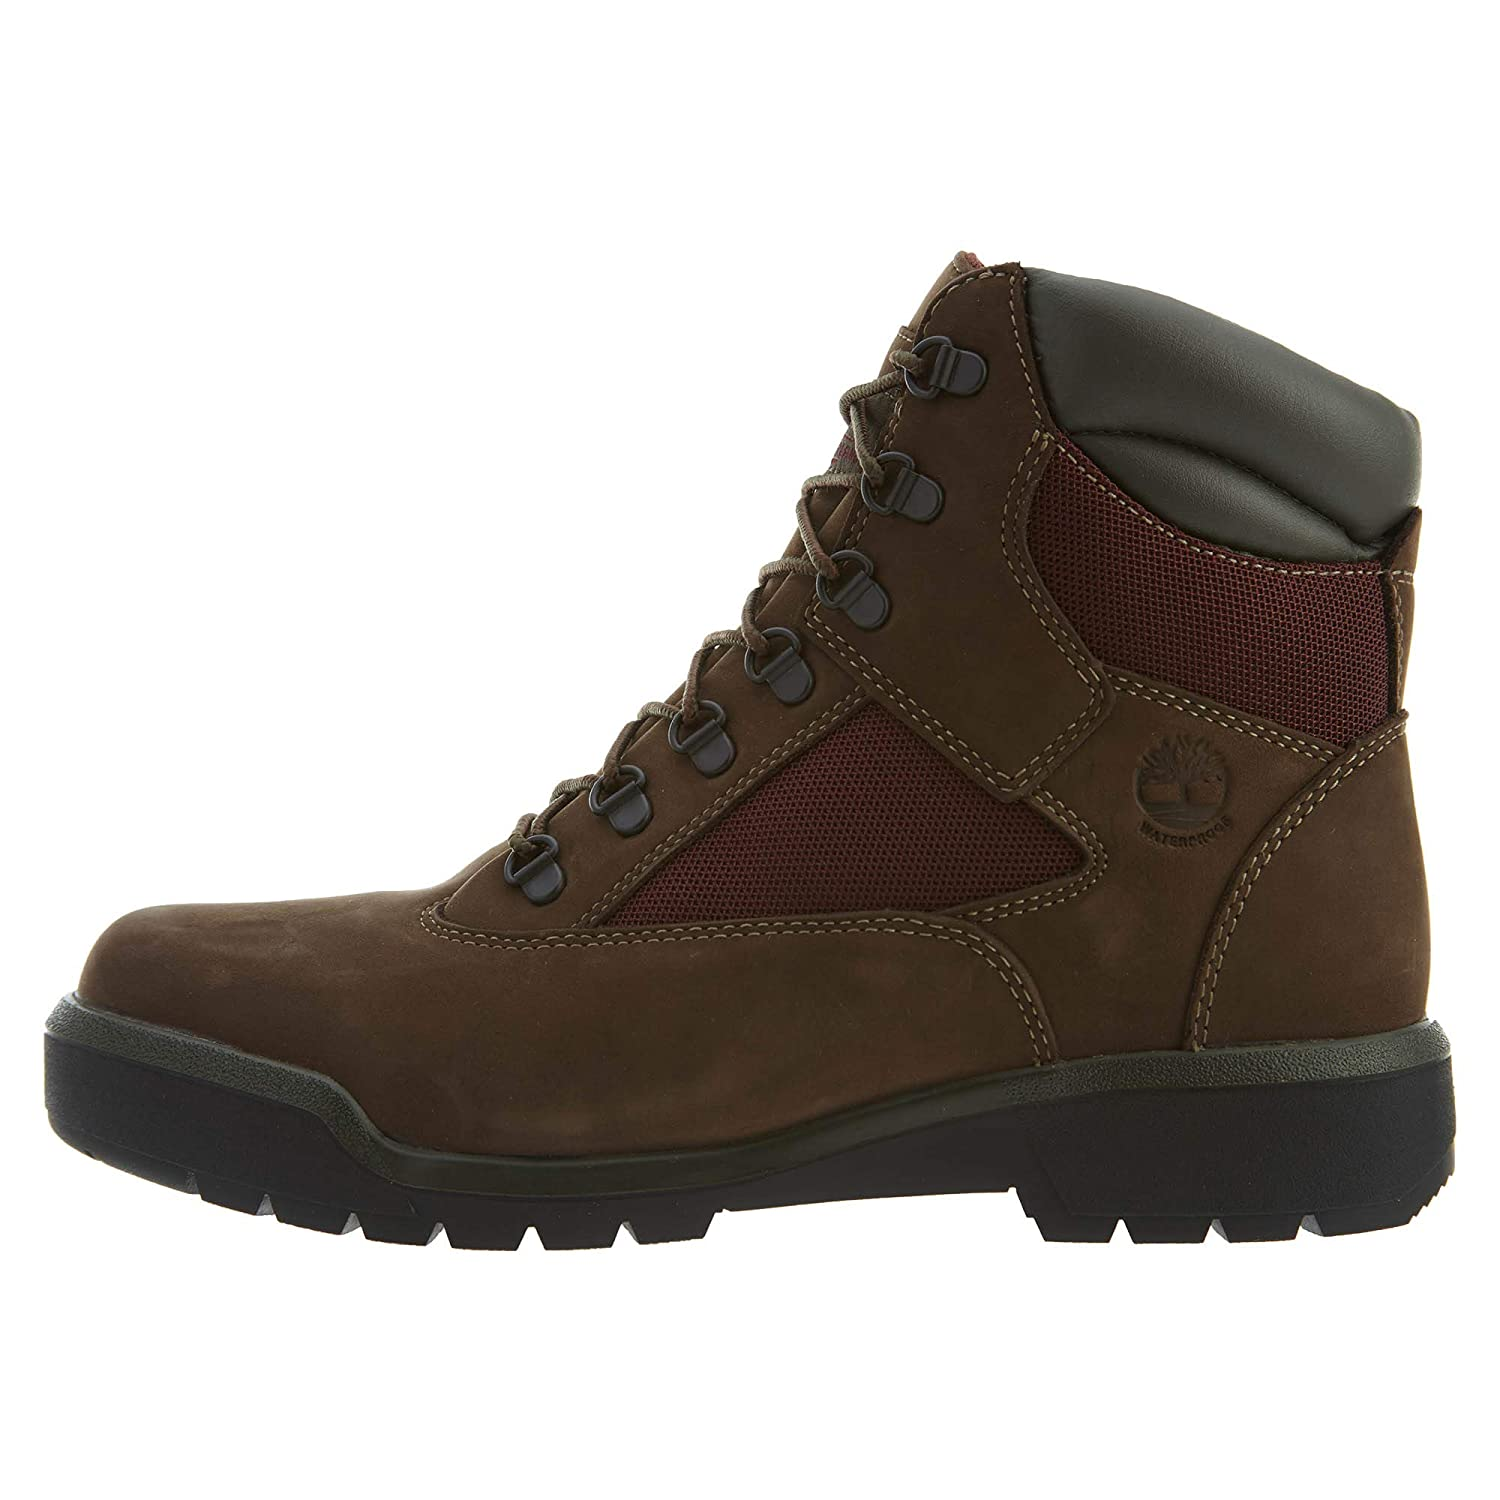 3a8337af2d0 Timberland Men's 6 in Field Boot